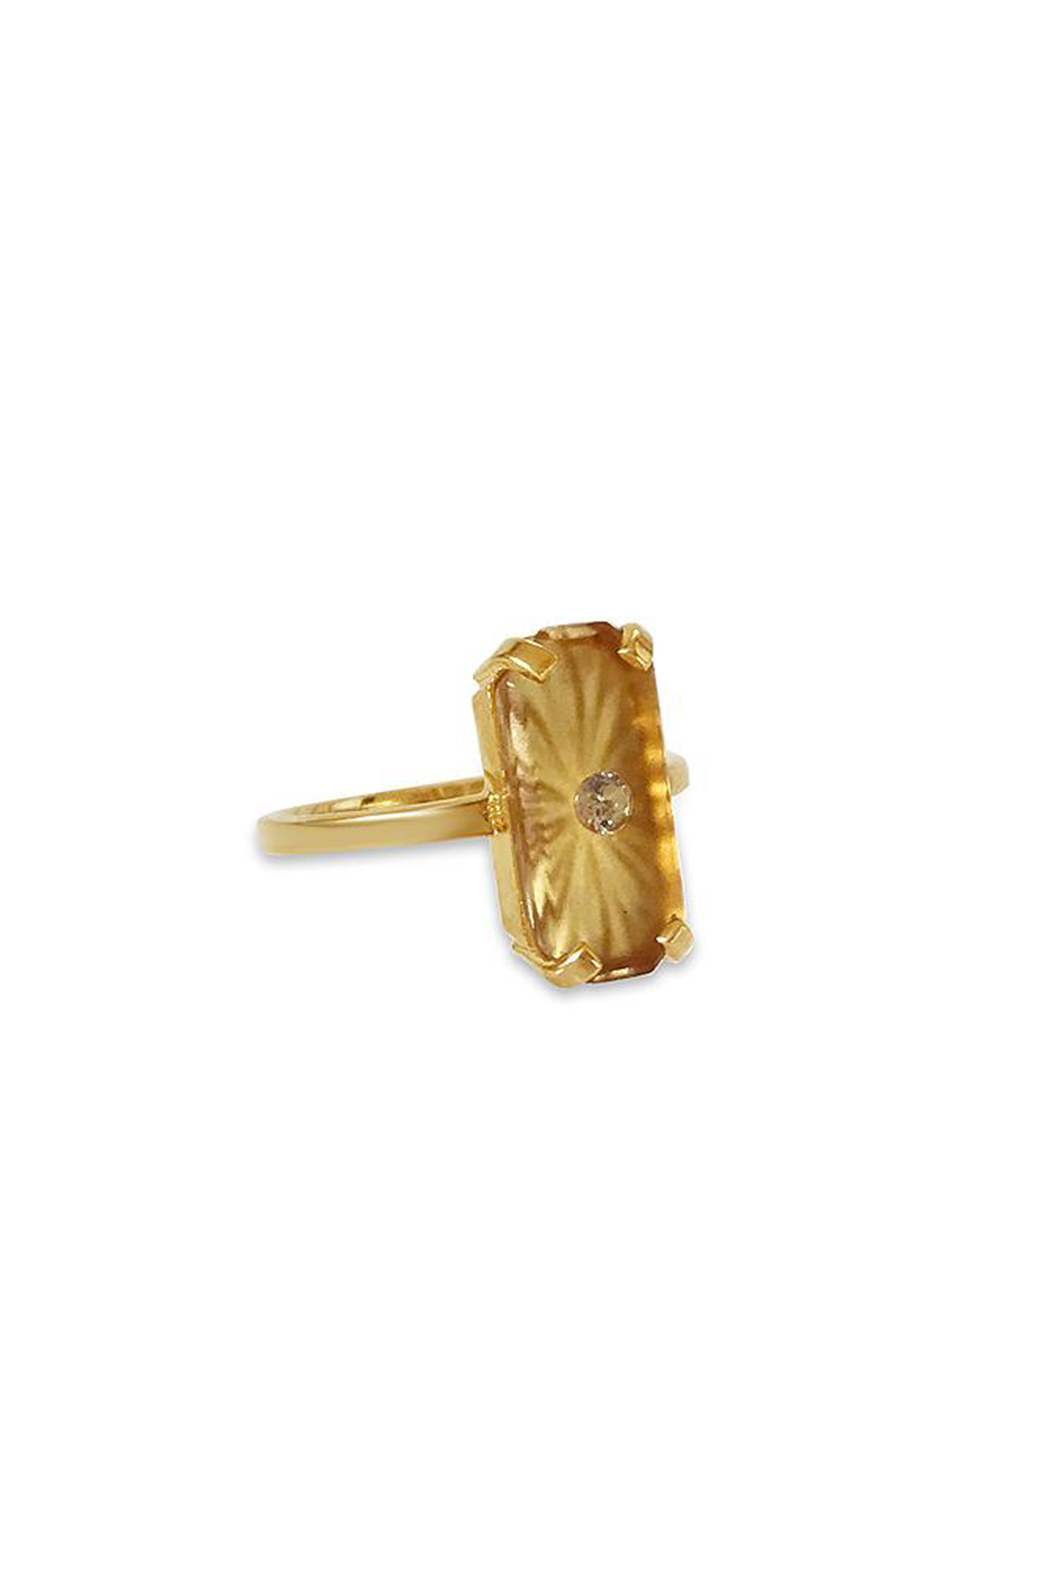 Erin Fader Jewelry Day Dreamer Studded Topaz Ring - Front Full Image